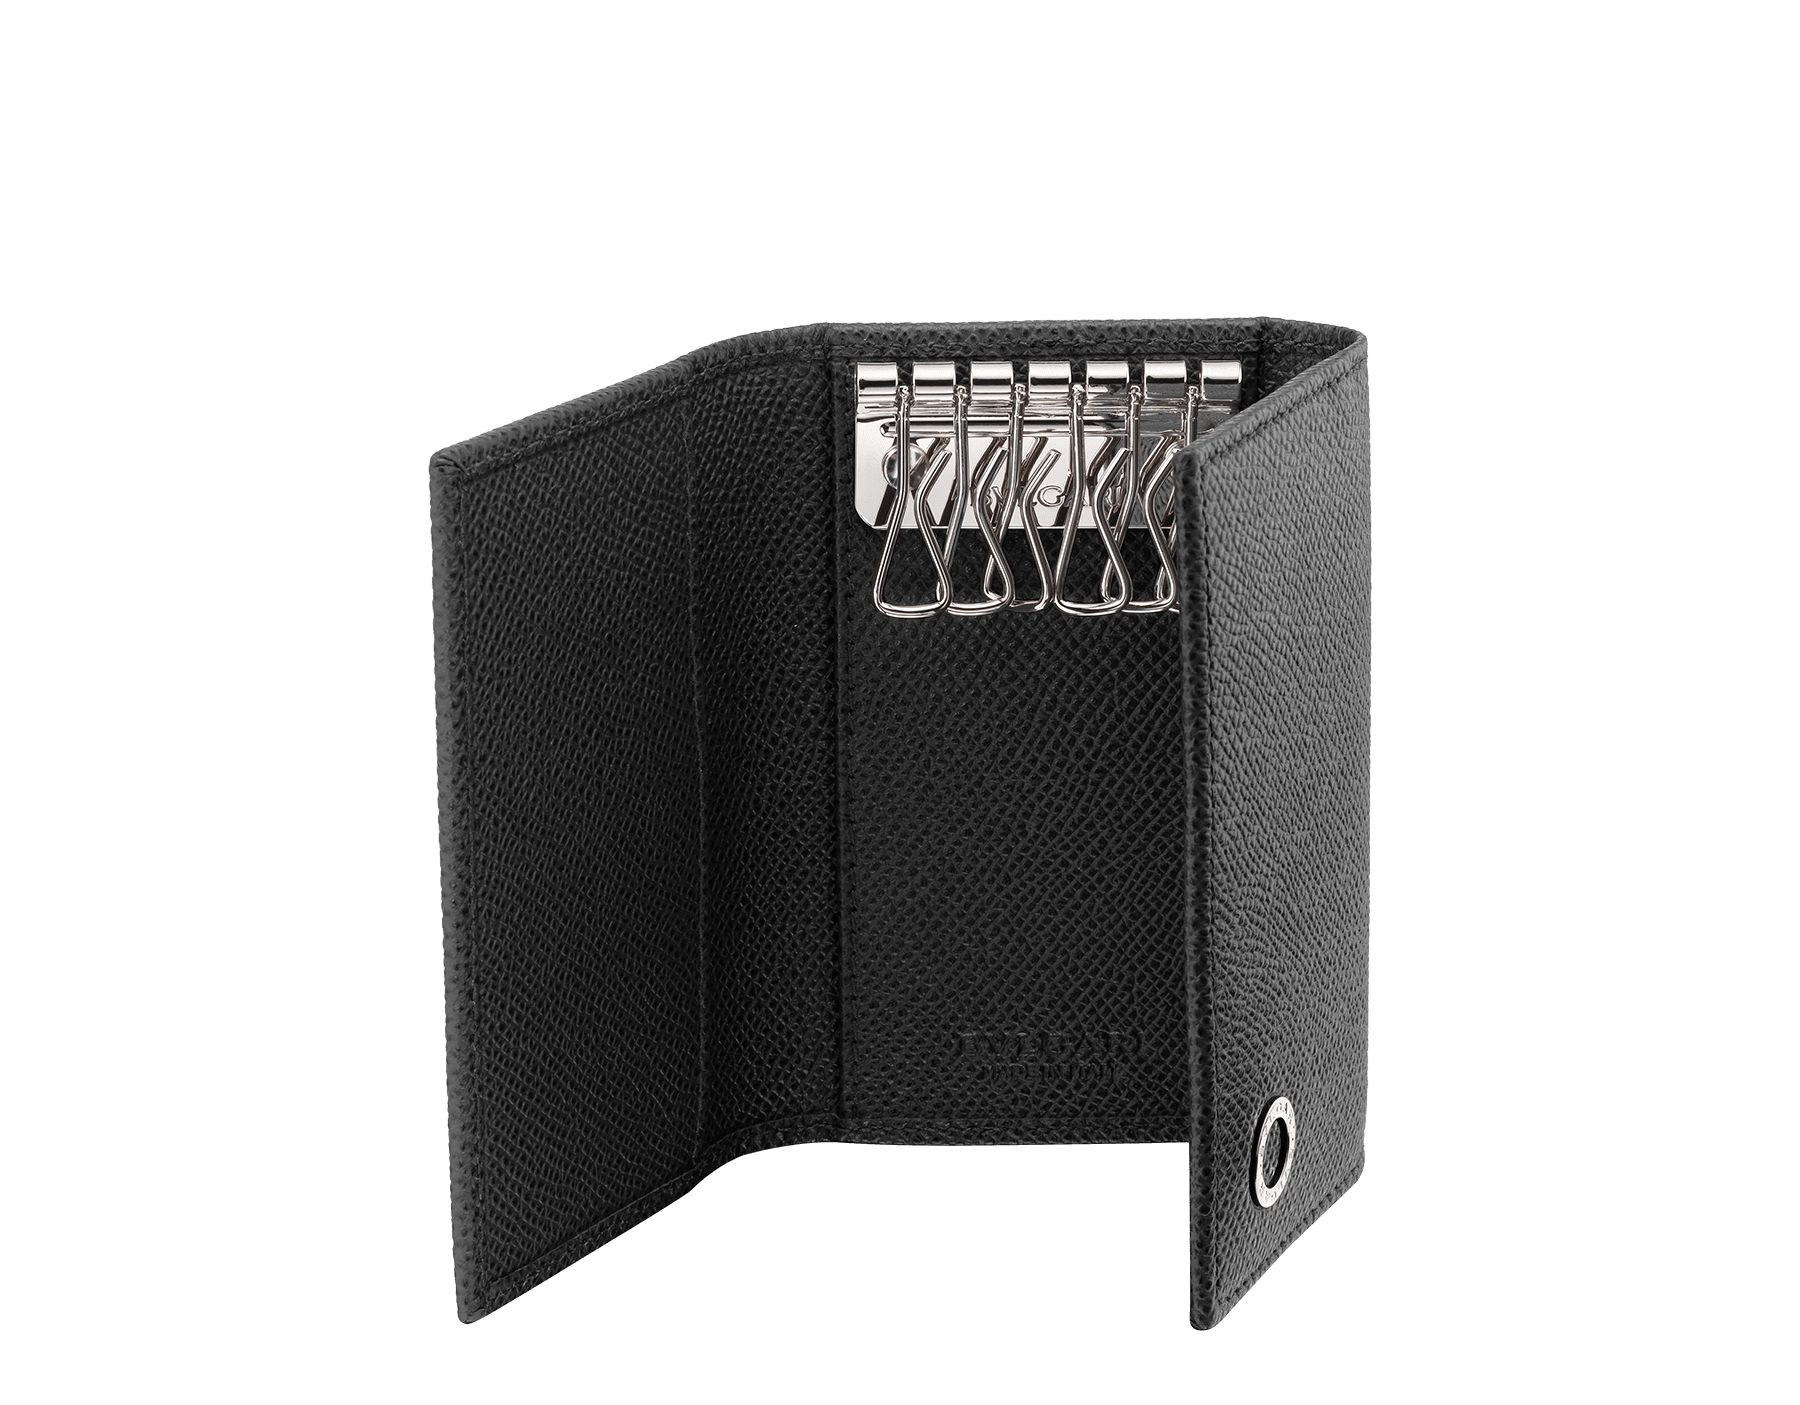 Small keyholder in black grain calf leather with brass palladium plated hardware featuring the Bvlgari-Bvlgari motif. Six internal key holders, two pockets and one open compartment inside. Flap closure with press button. BBM-KEYHOLDER-S image 2